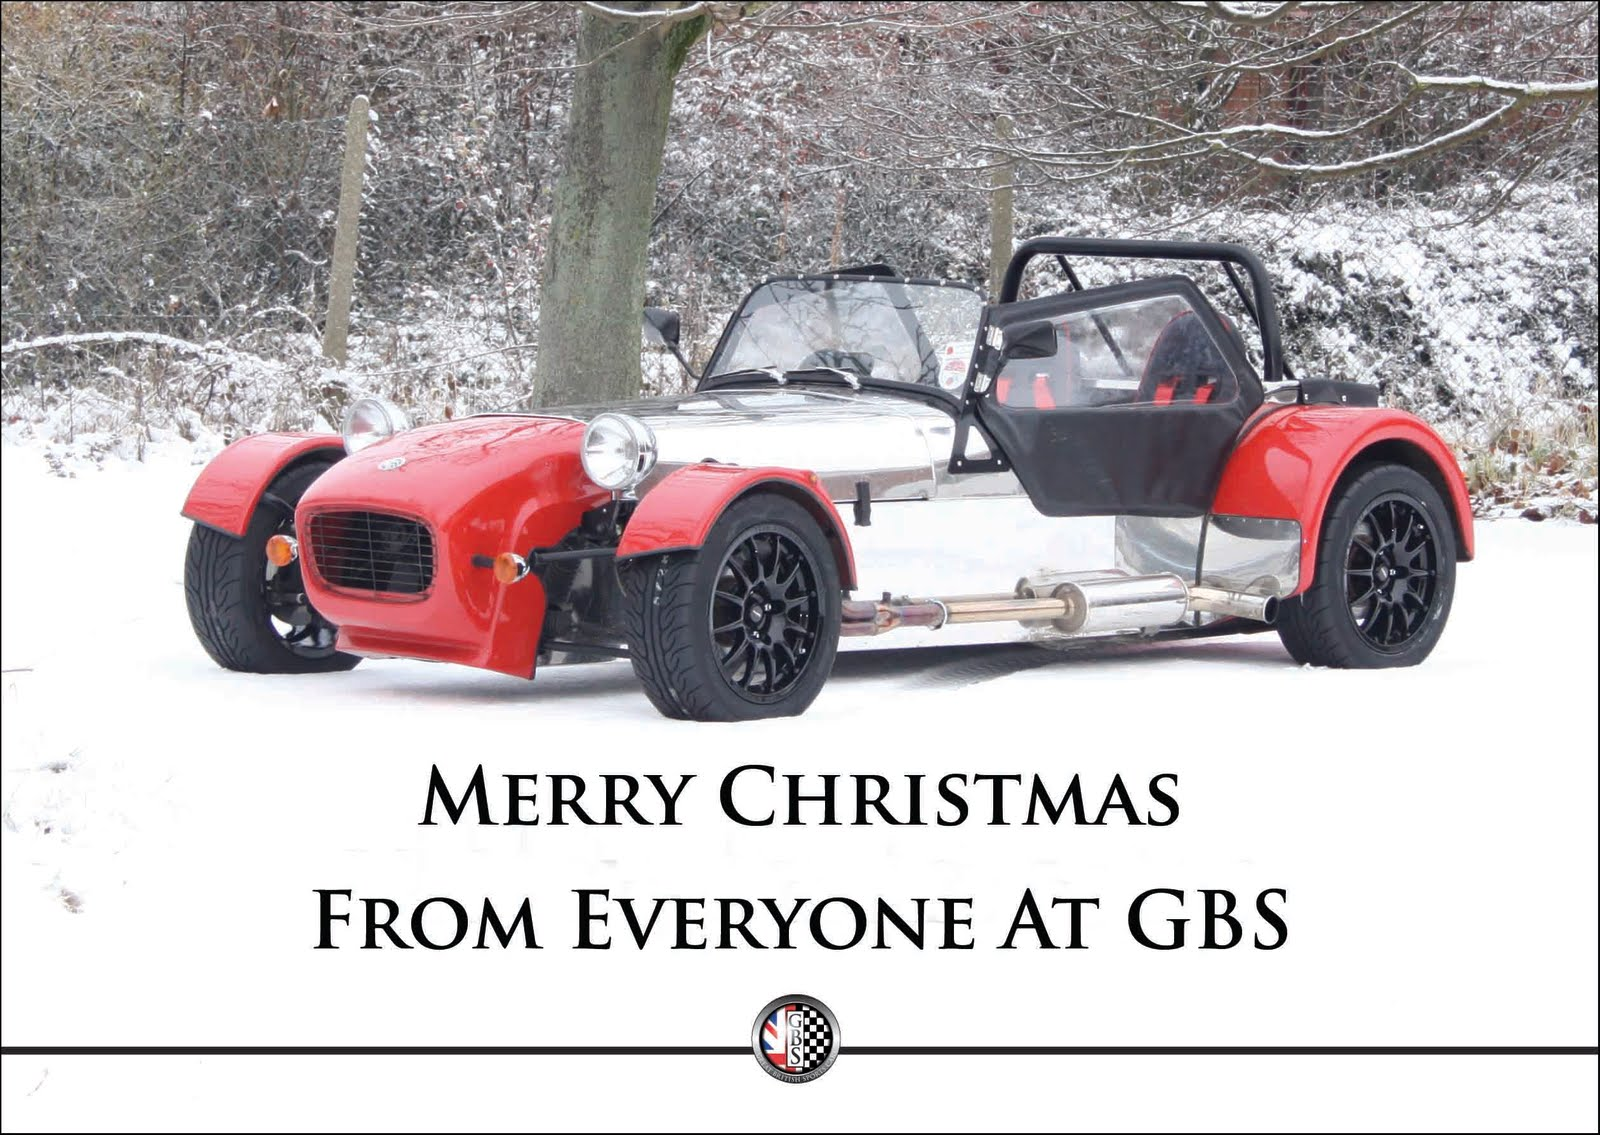 Merry Christmas From Everyone At Gbs Auto Keirning Cars